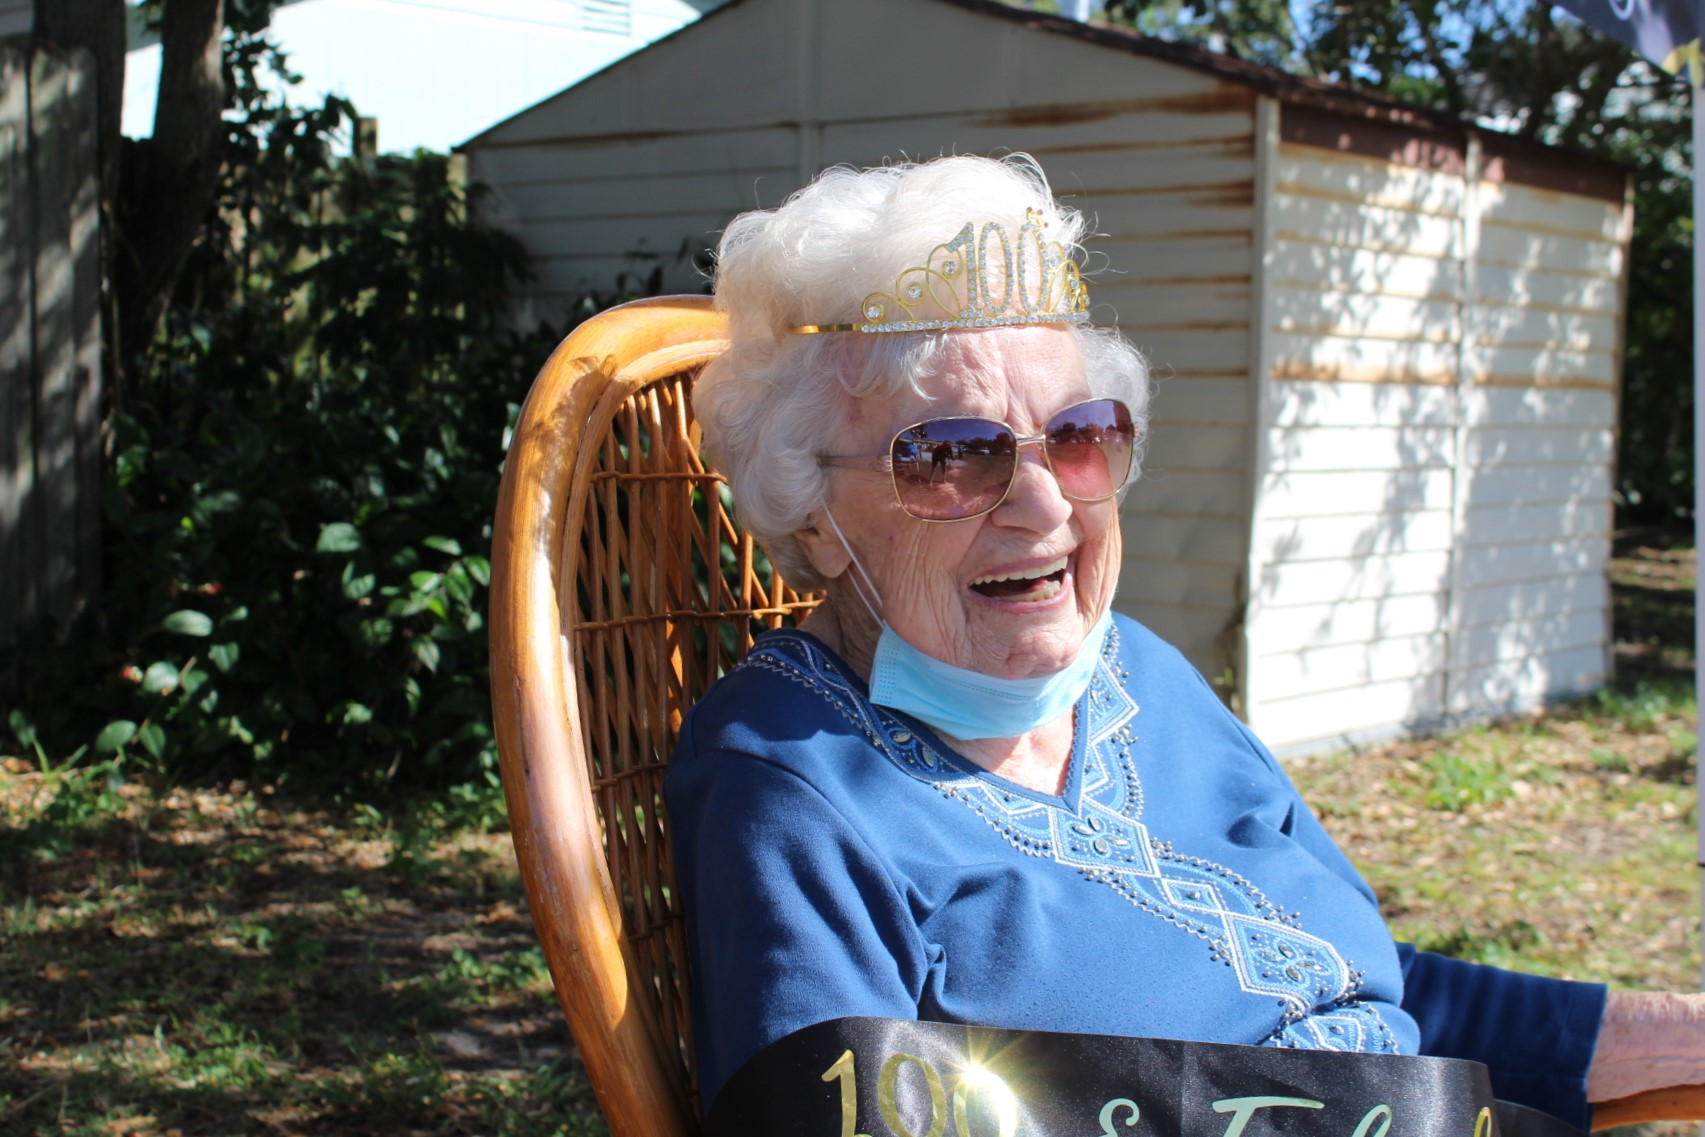 An older lady with white hair and sunglasses sits in a chair with a blue shirt and tiara.